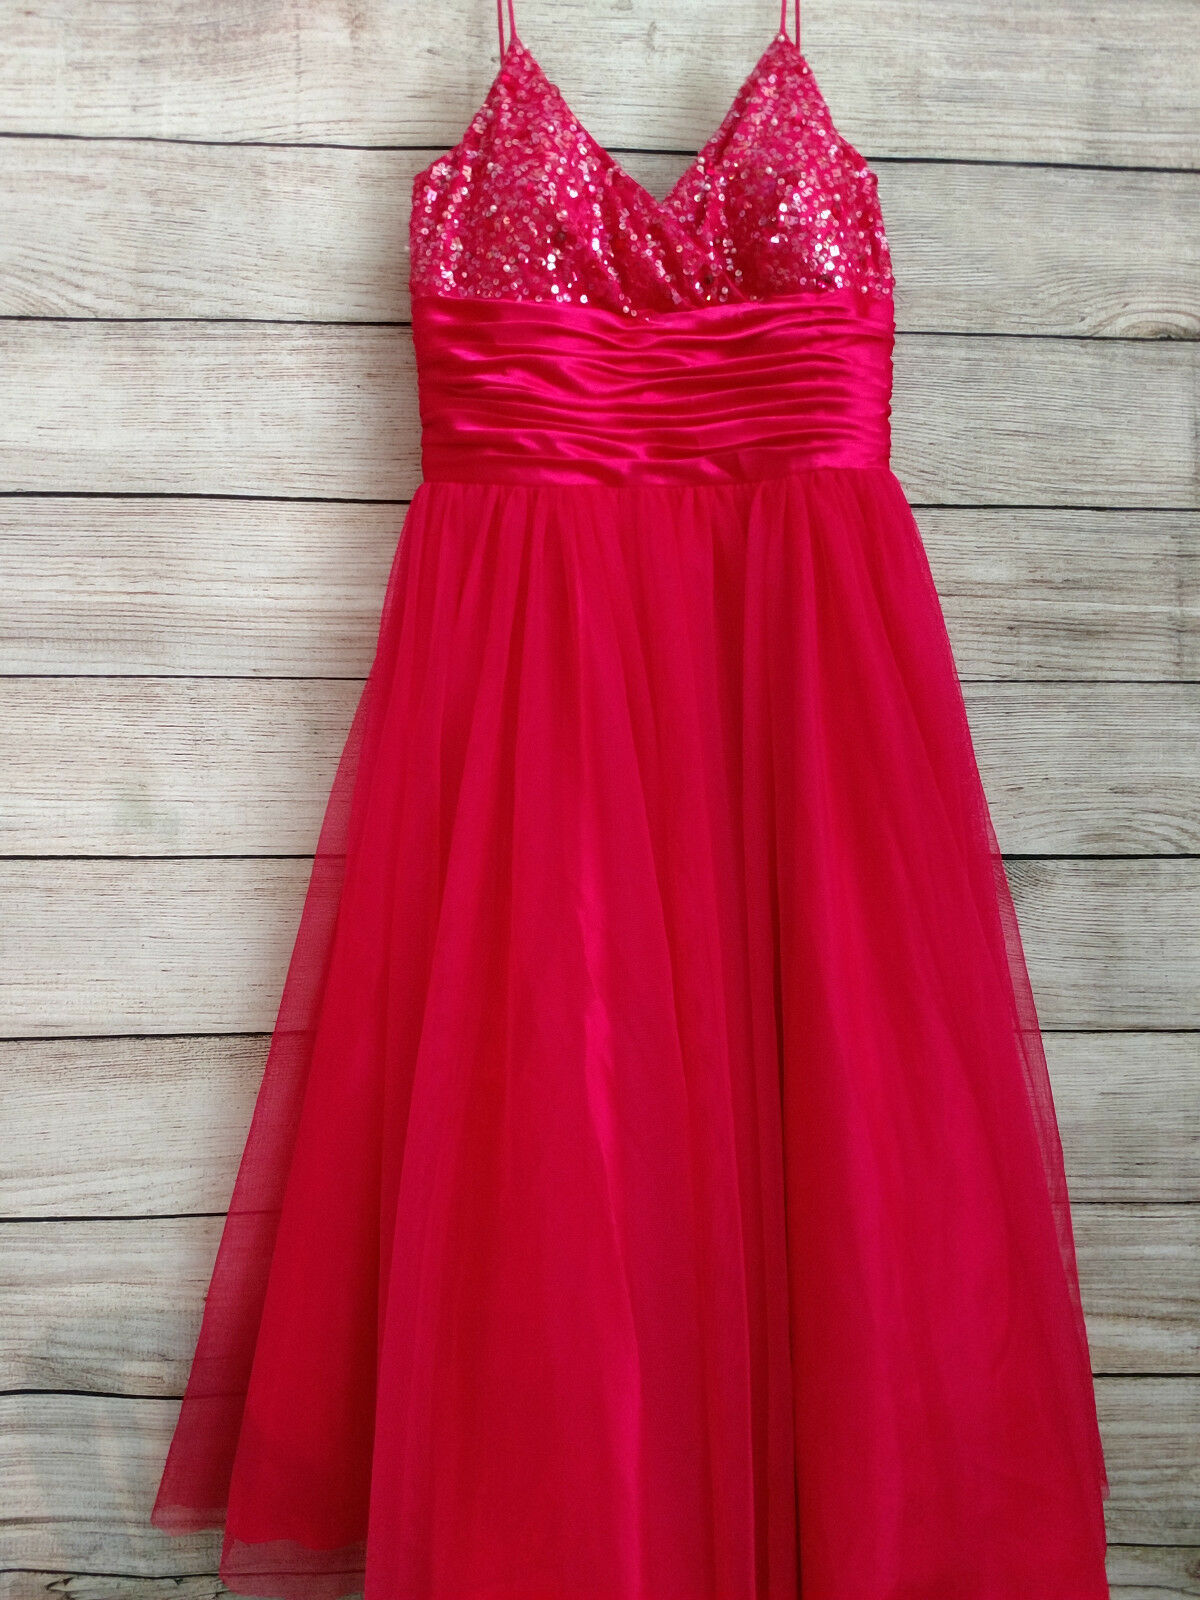 French Laundry Hot Pink w/Sequins Prom Dress Homecoming Party Juniors Size 3/4